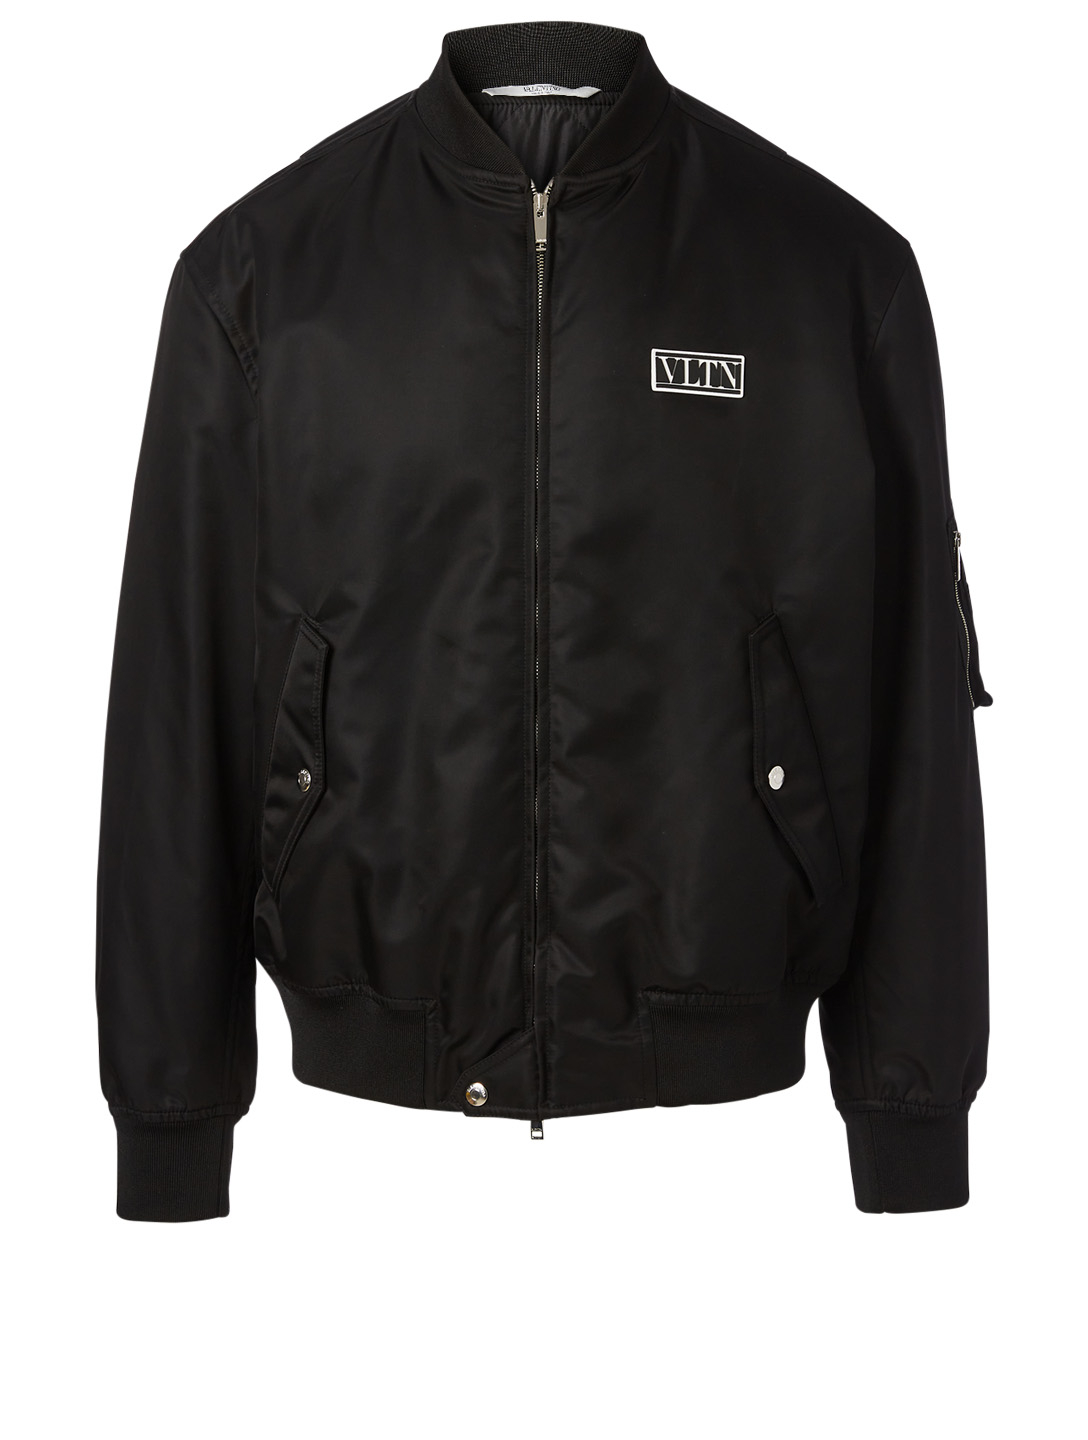 VALENTINO Bomber Jacket With VLTN Tag Men's Black